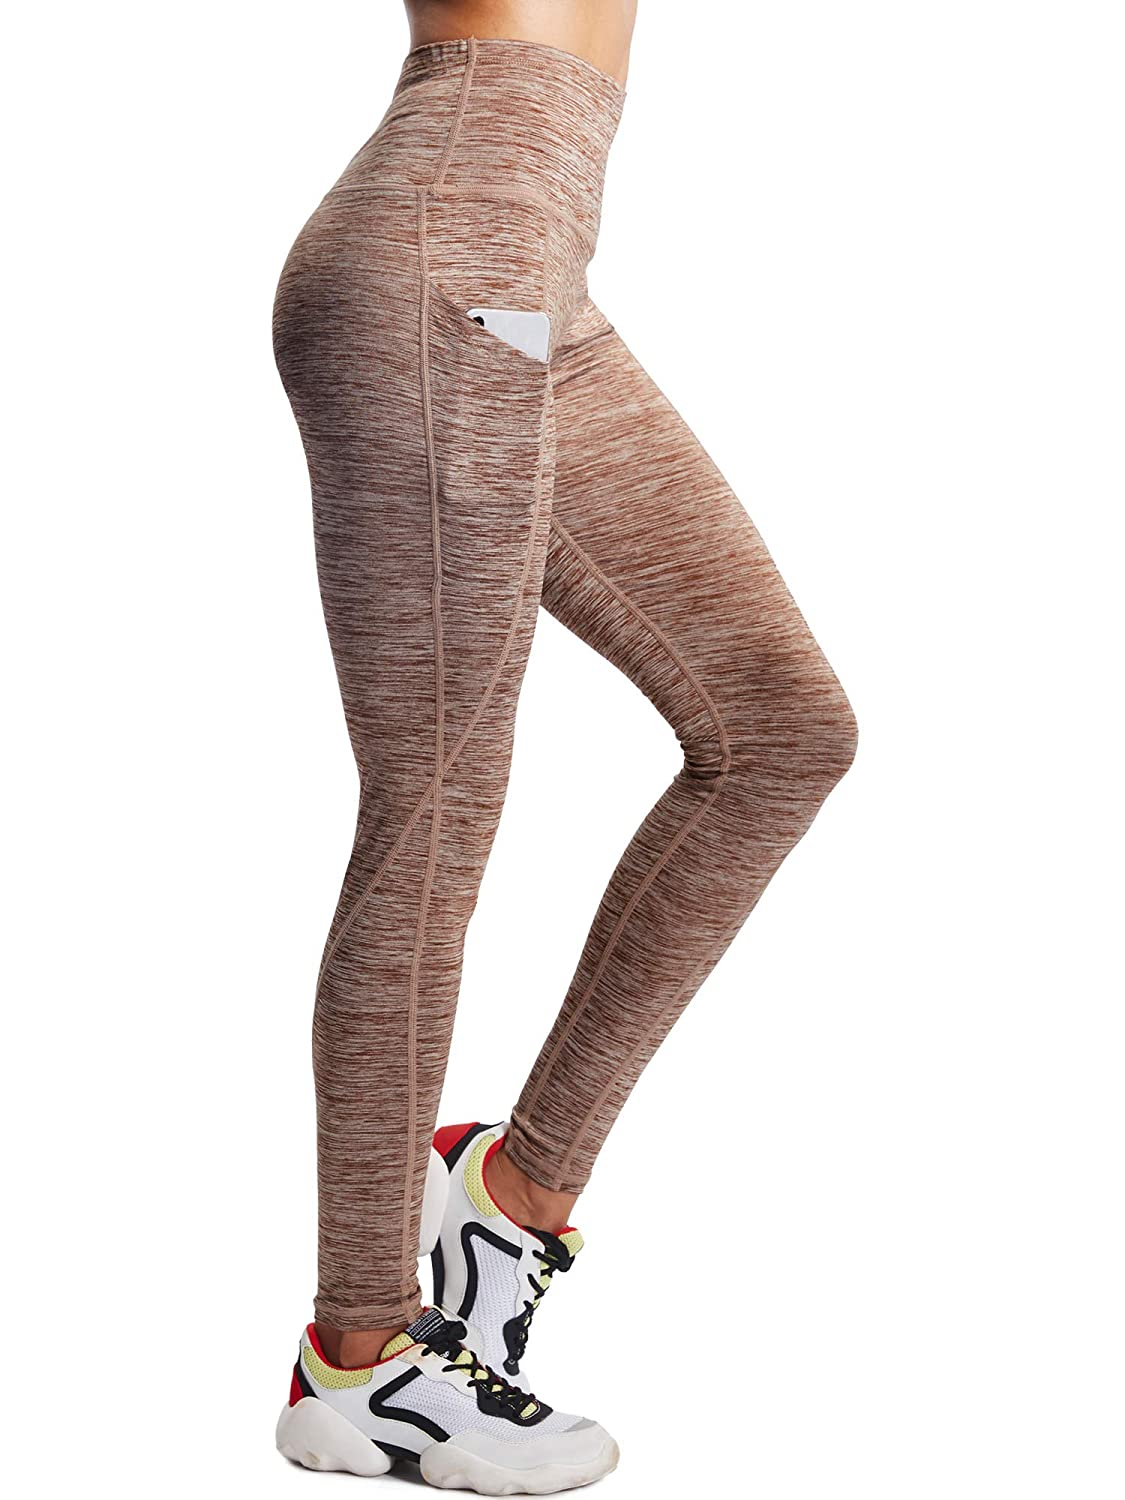 9033 One Piece Of brown Neleus High Waist Running Workout Leggings for Yoga with Pockets